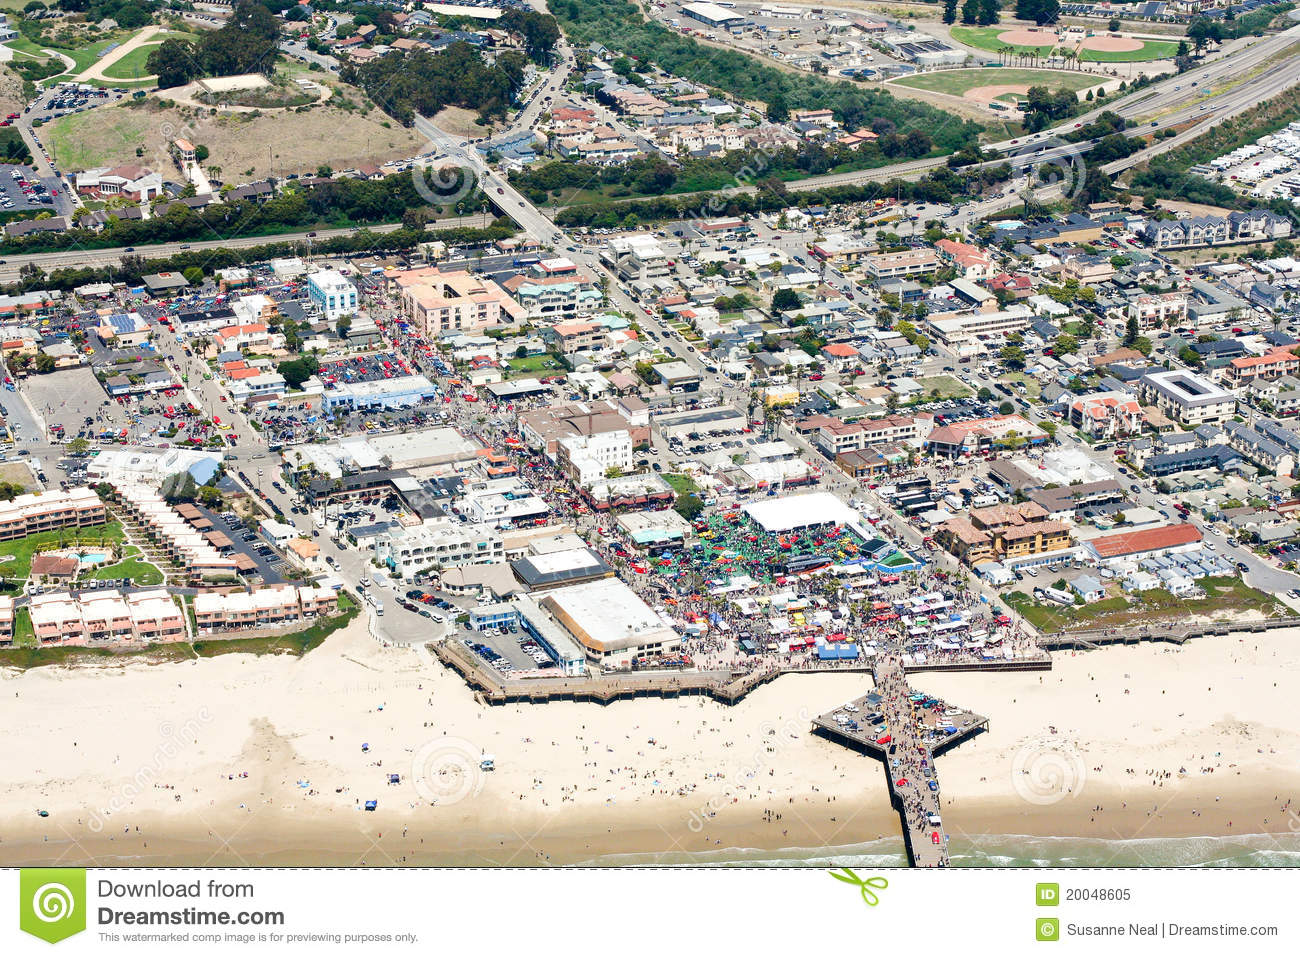 Aerial View Of Pismo Beach CA Stock Image Image Of Scenic Show - Pismo beach car show